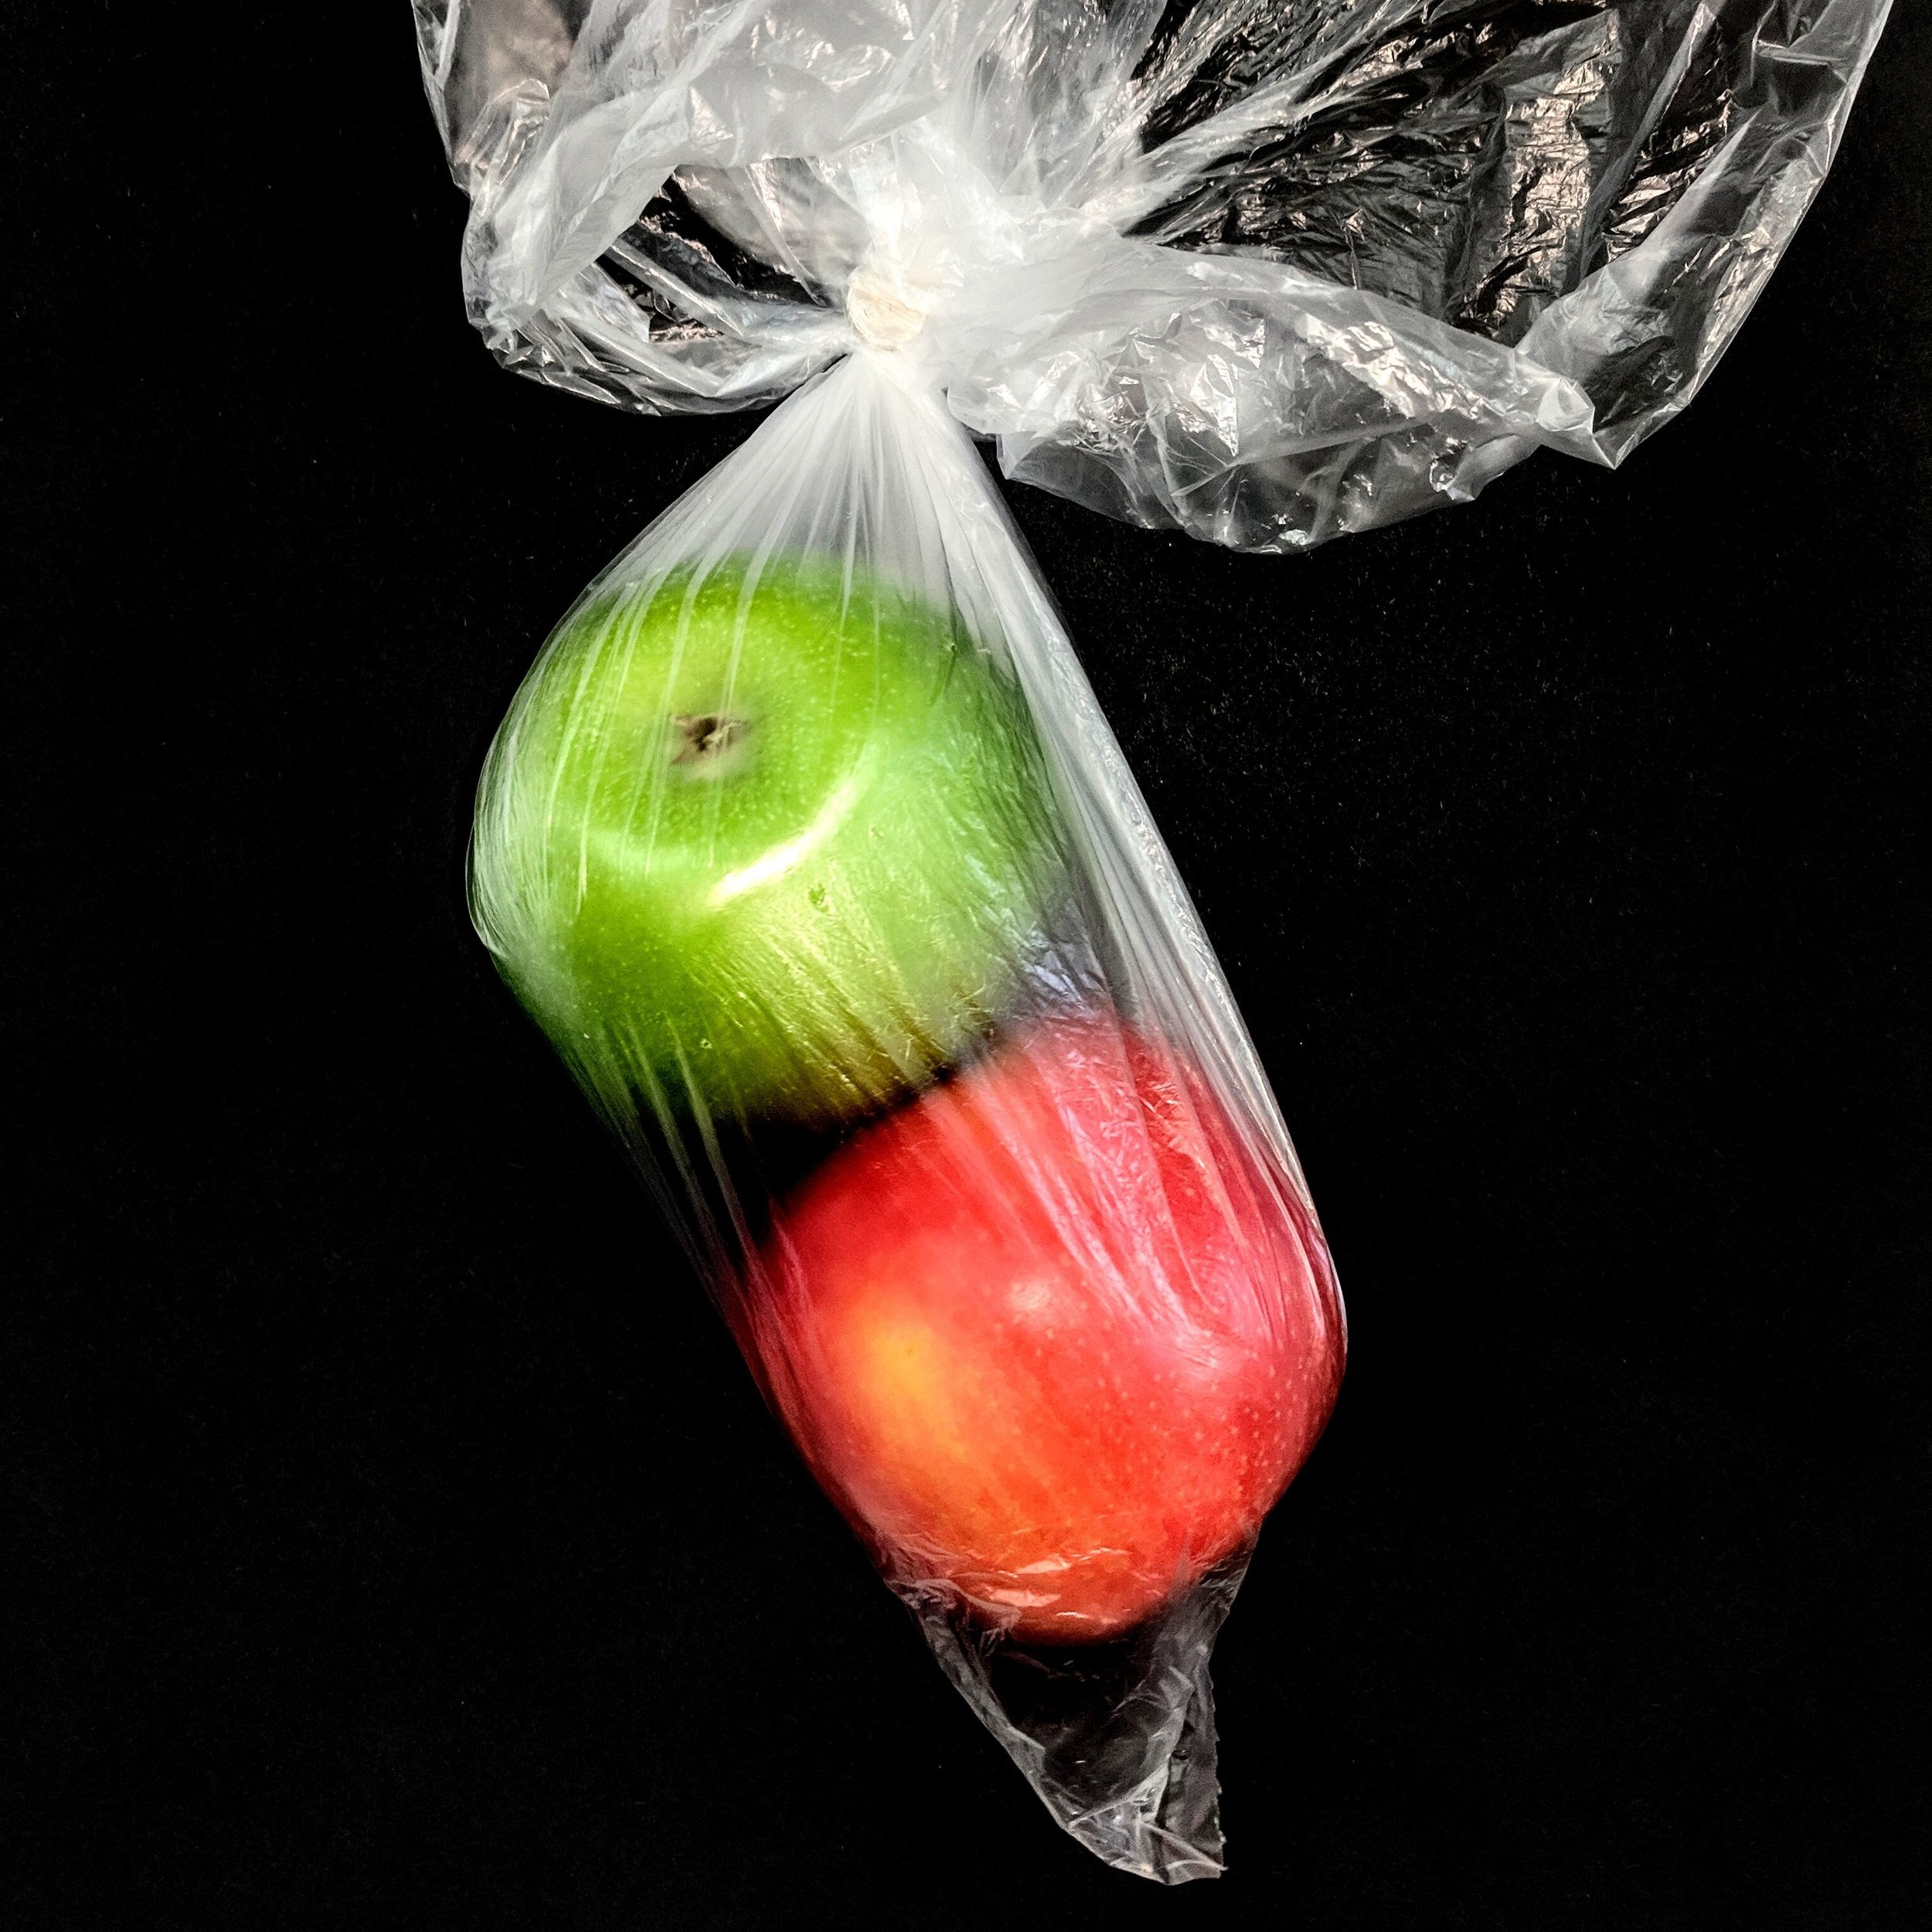 plastic%2Bpackage%2Bapple